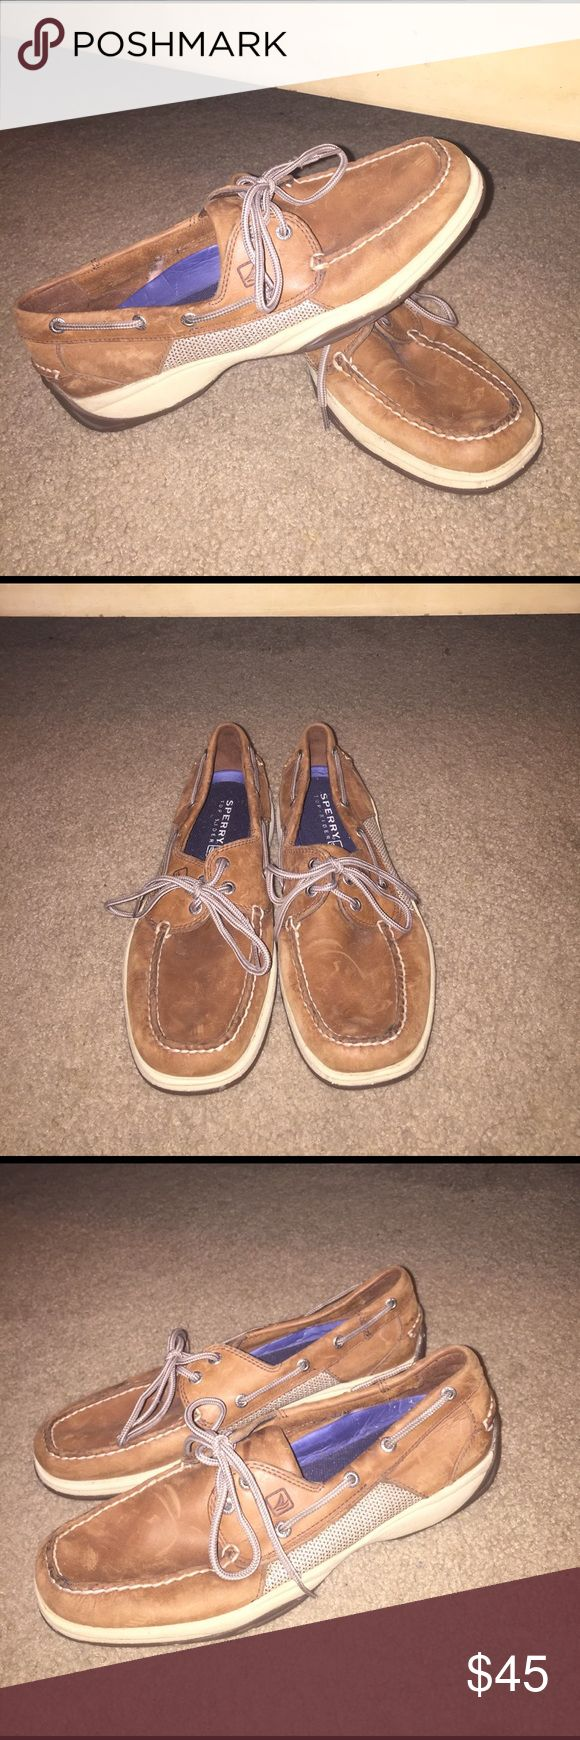 Mens sperry size: 10 Mens sperry boat shoe. In good condition. Sperry Top-Sider Shoes Boat Shoes